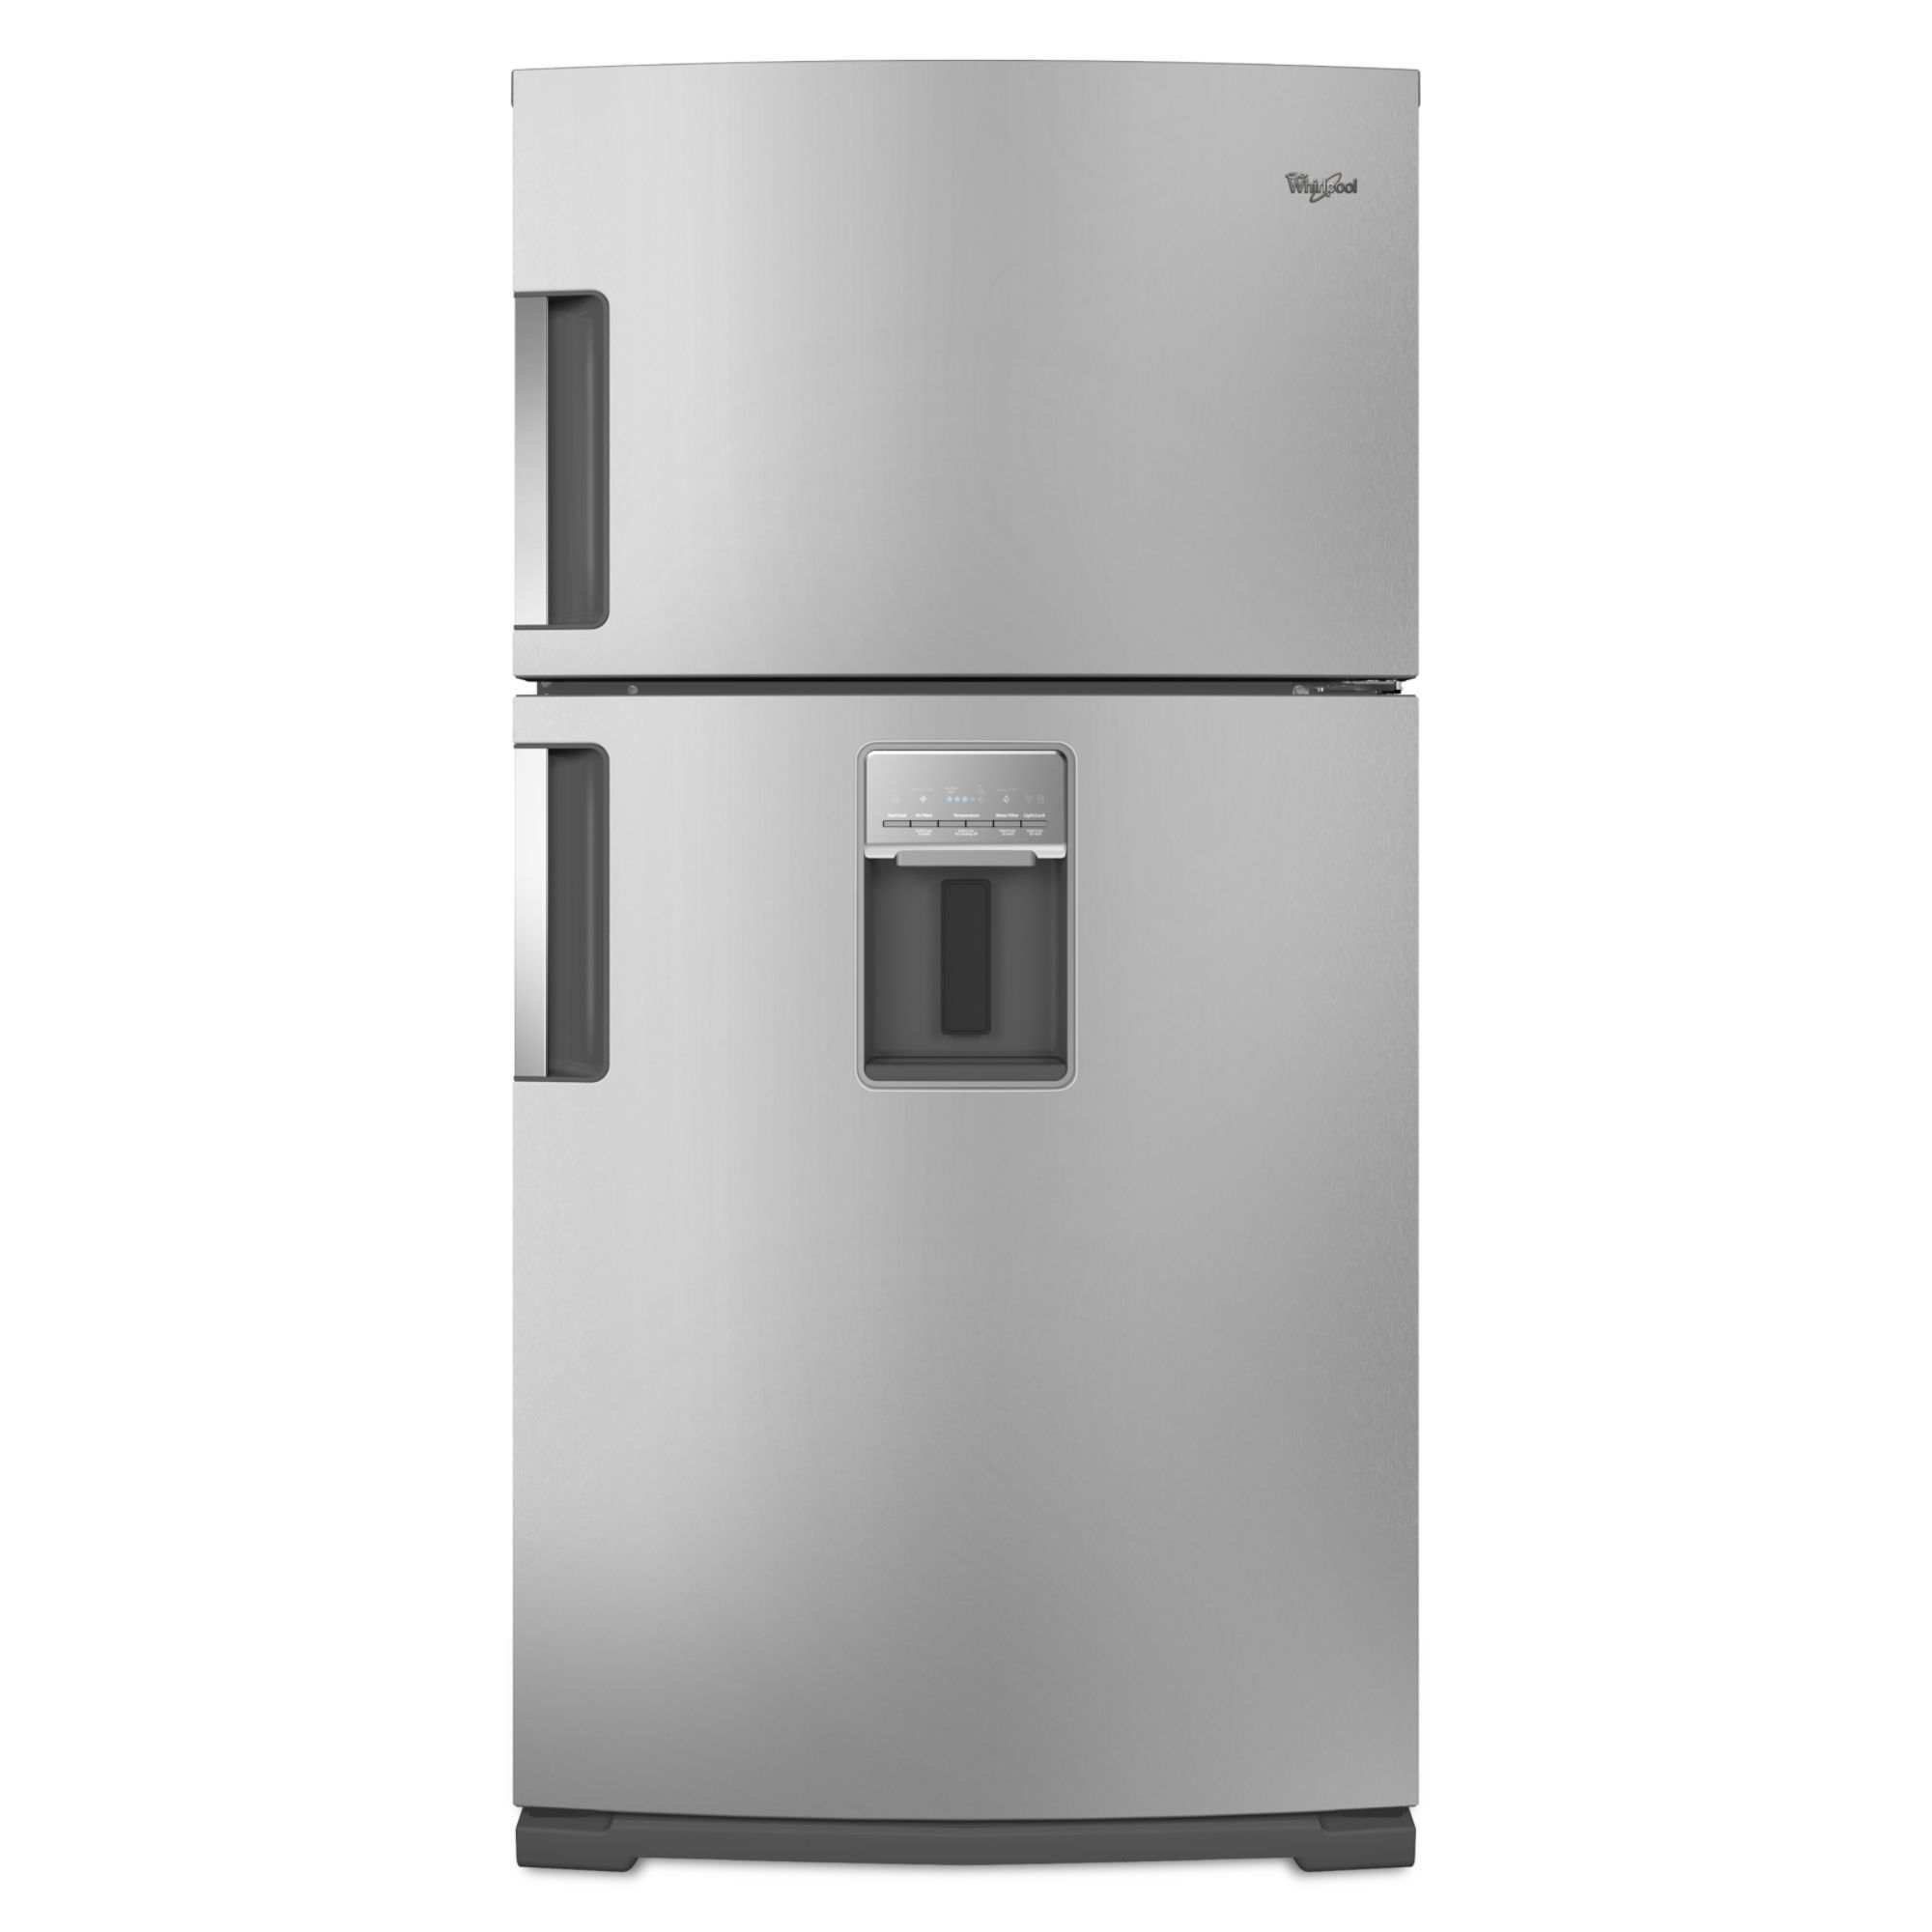 Whirlpool Top Freezer Refrigerator 21.1 cu. ft. WRT771REYM - Sears ...